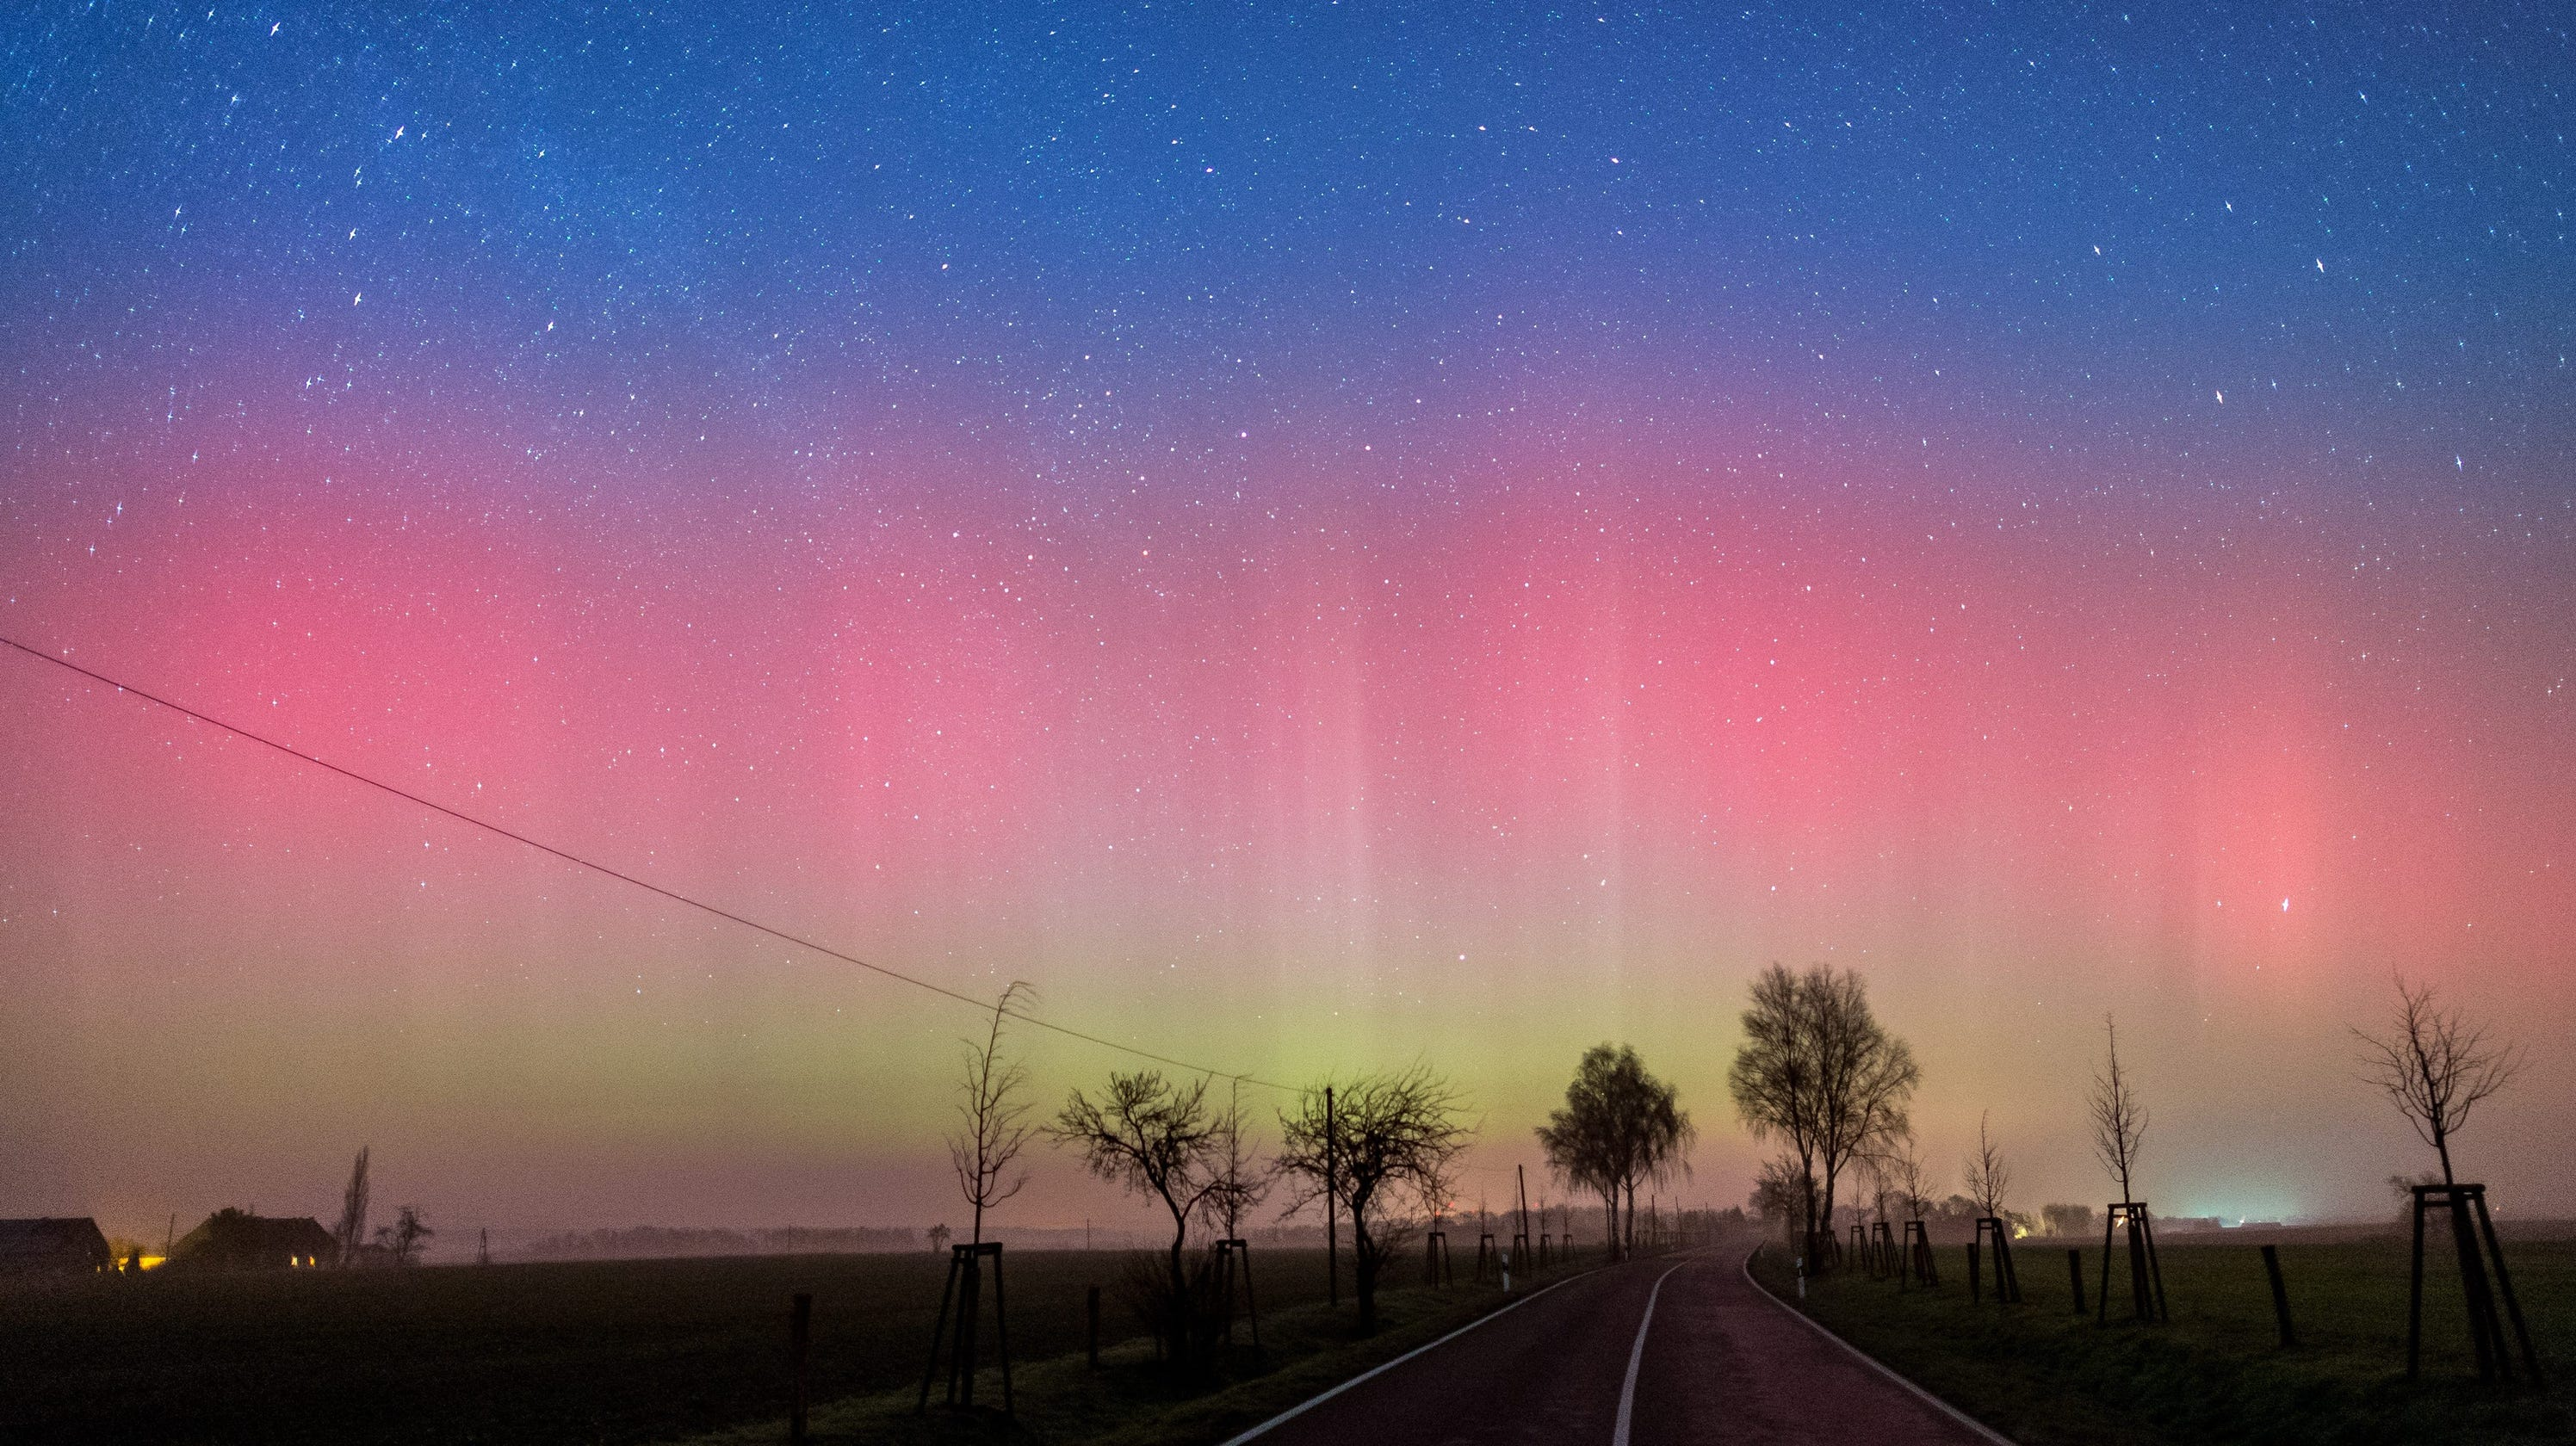 Northern US and Canada will have rare chance to see Northern Lights, forecast says